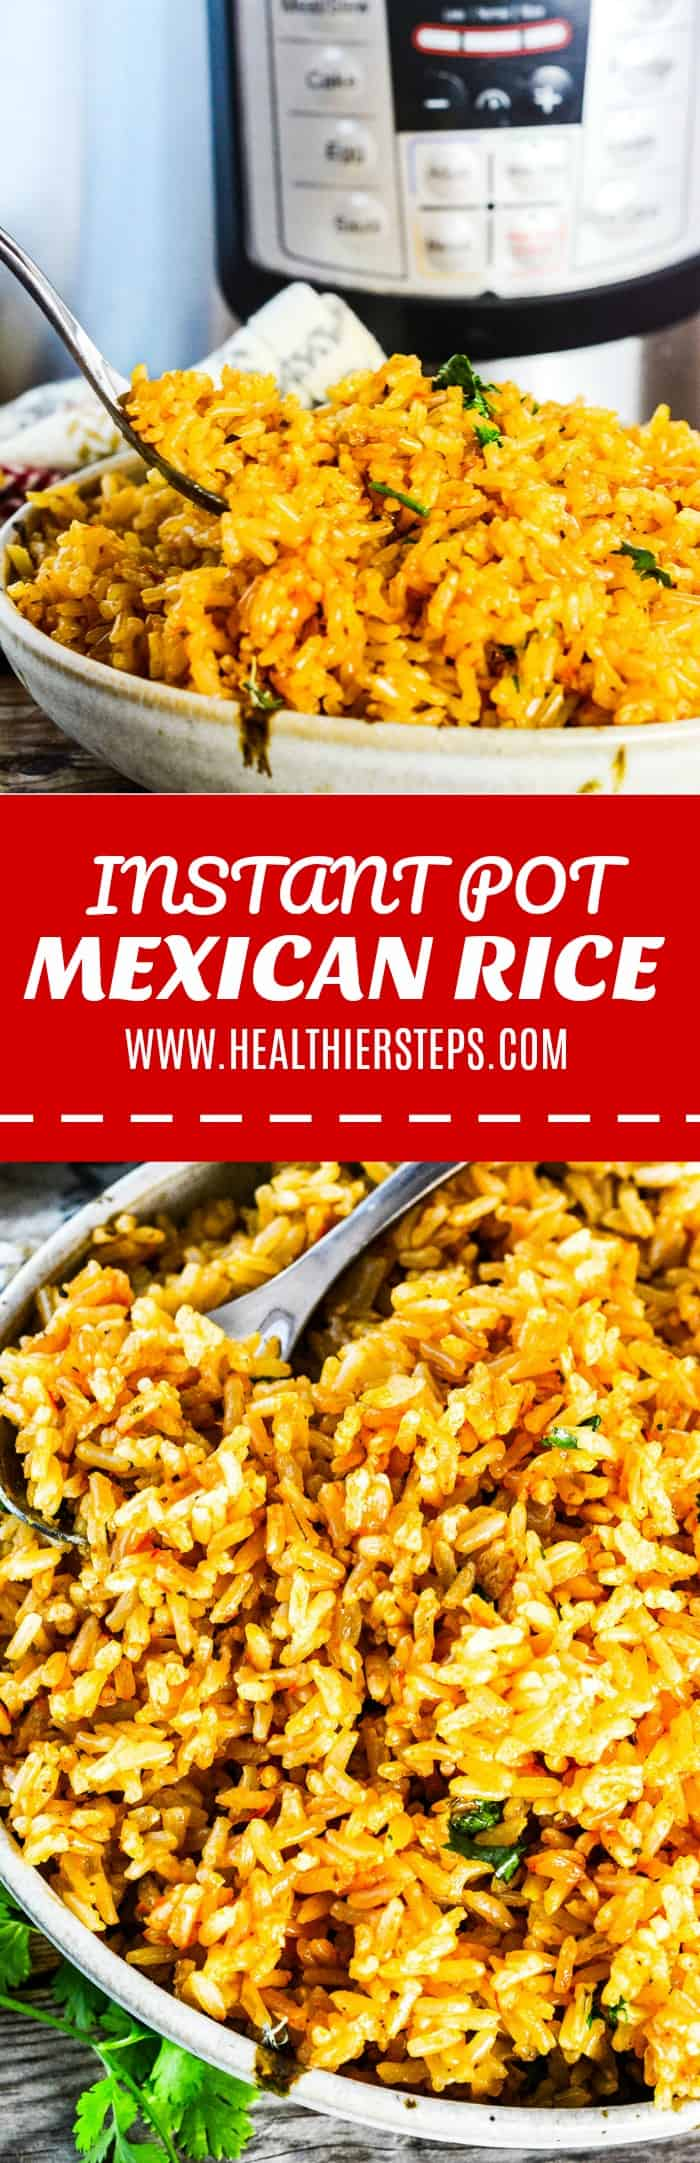 Intant Pot Mexican Rice